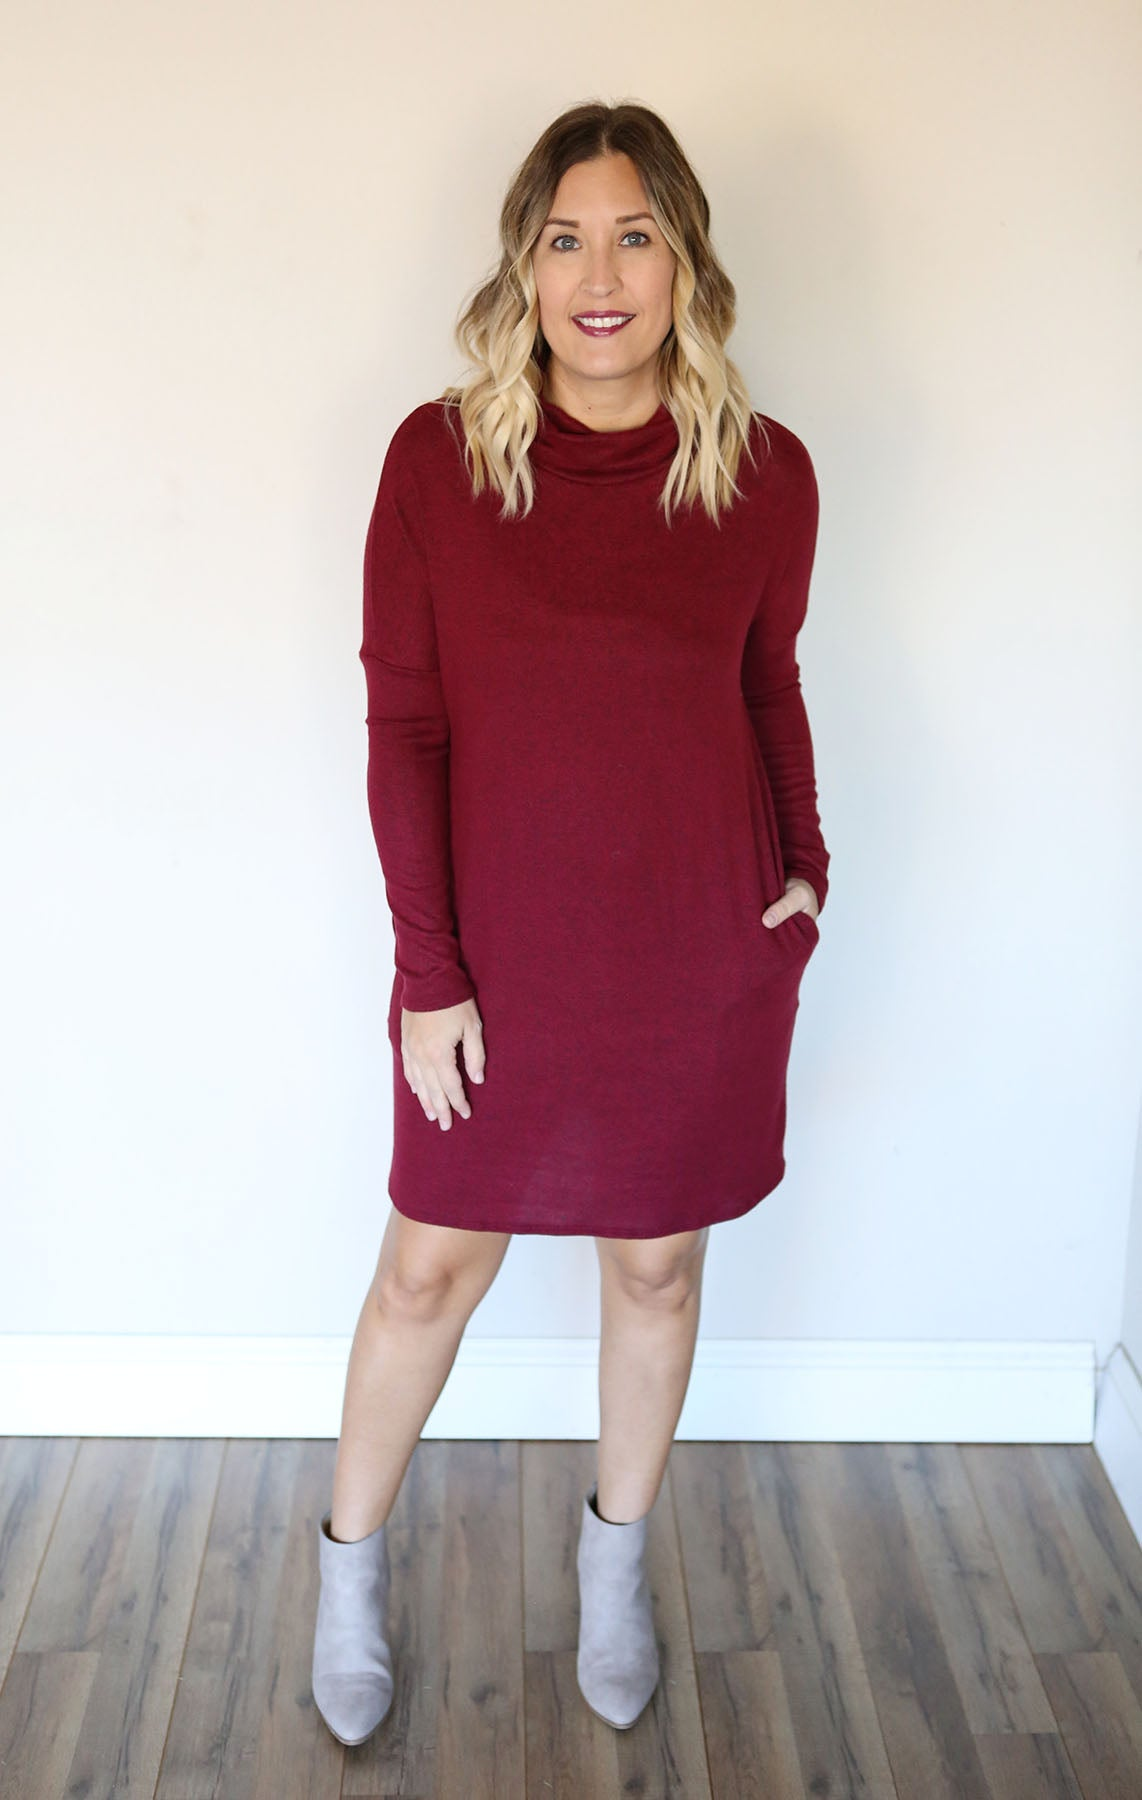 Coppes Sweater Dress - Wine